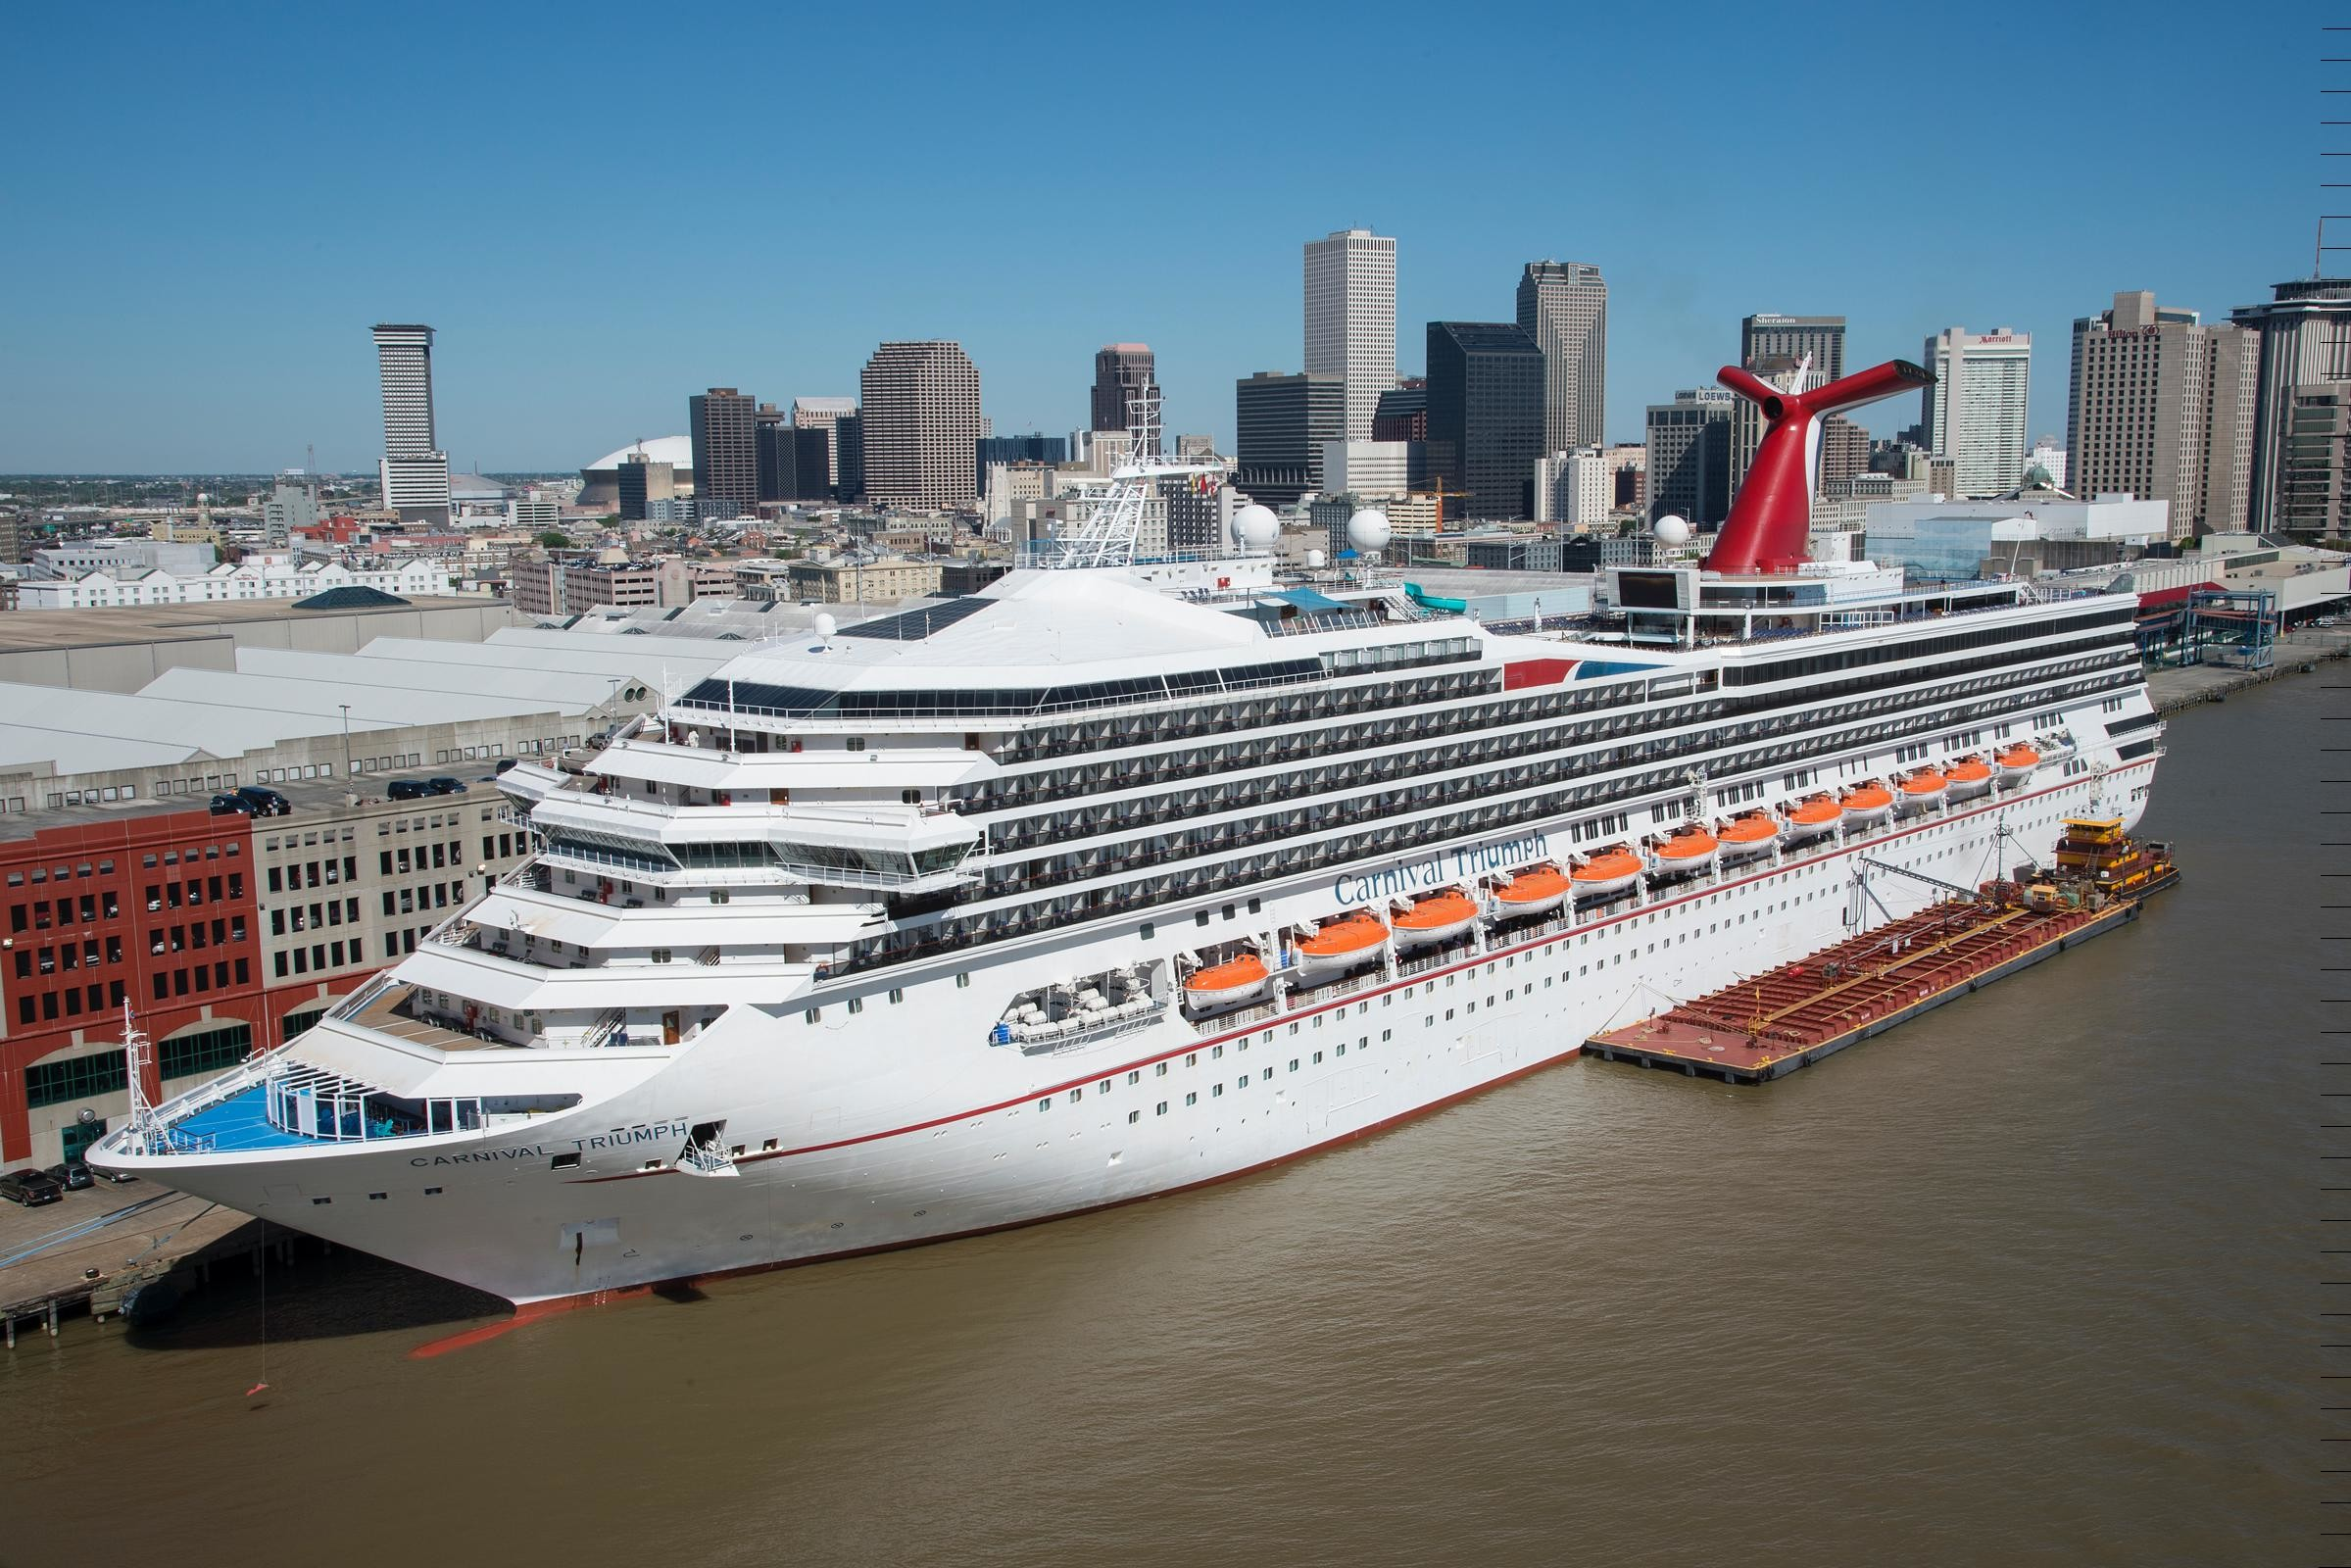 wallpapers 7 carnival cruise ship out of new orleans wallpaper